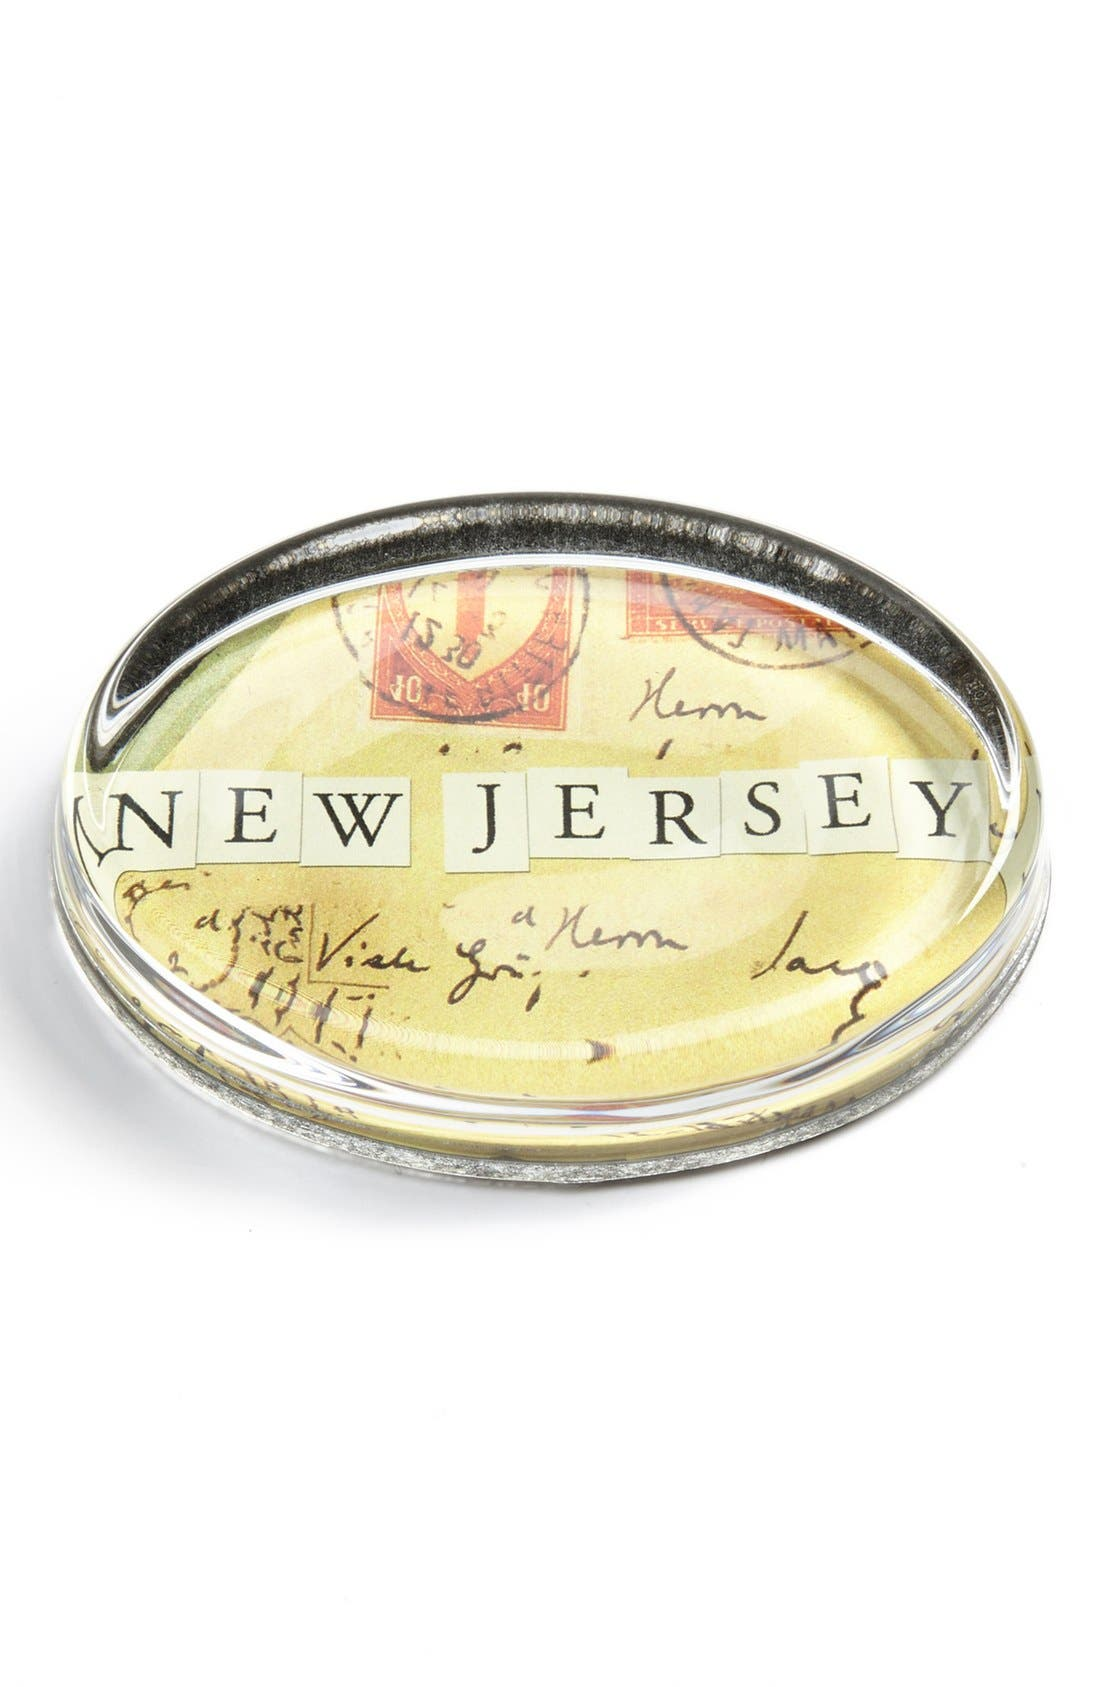 Alternate Image 1 Selected - Ben's Garden 'New Jersey' Paperweight